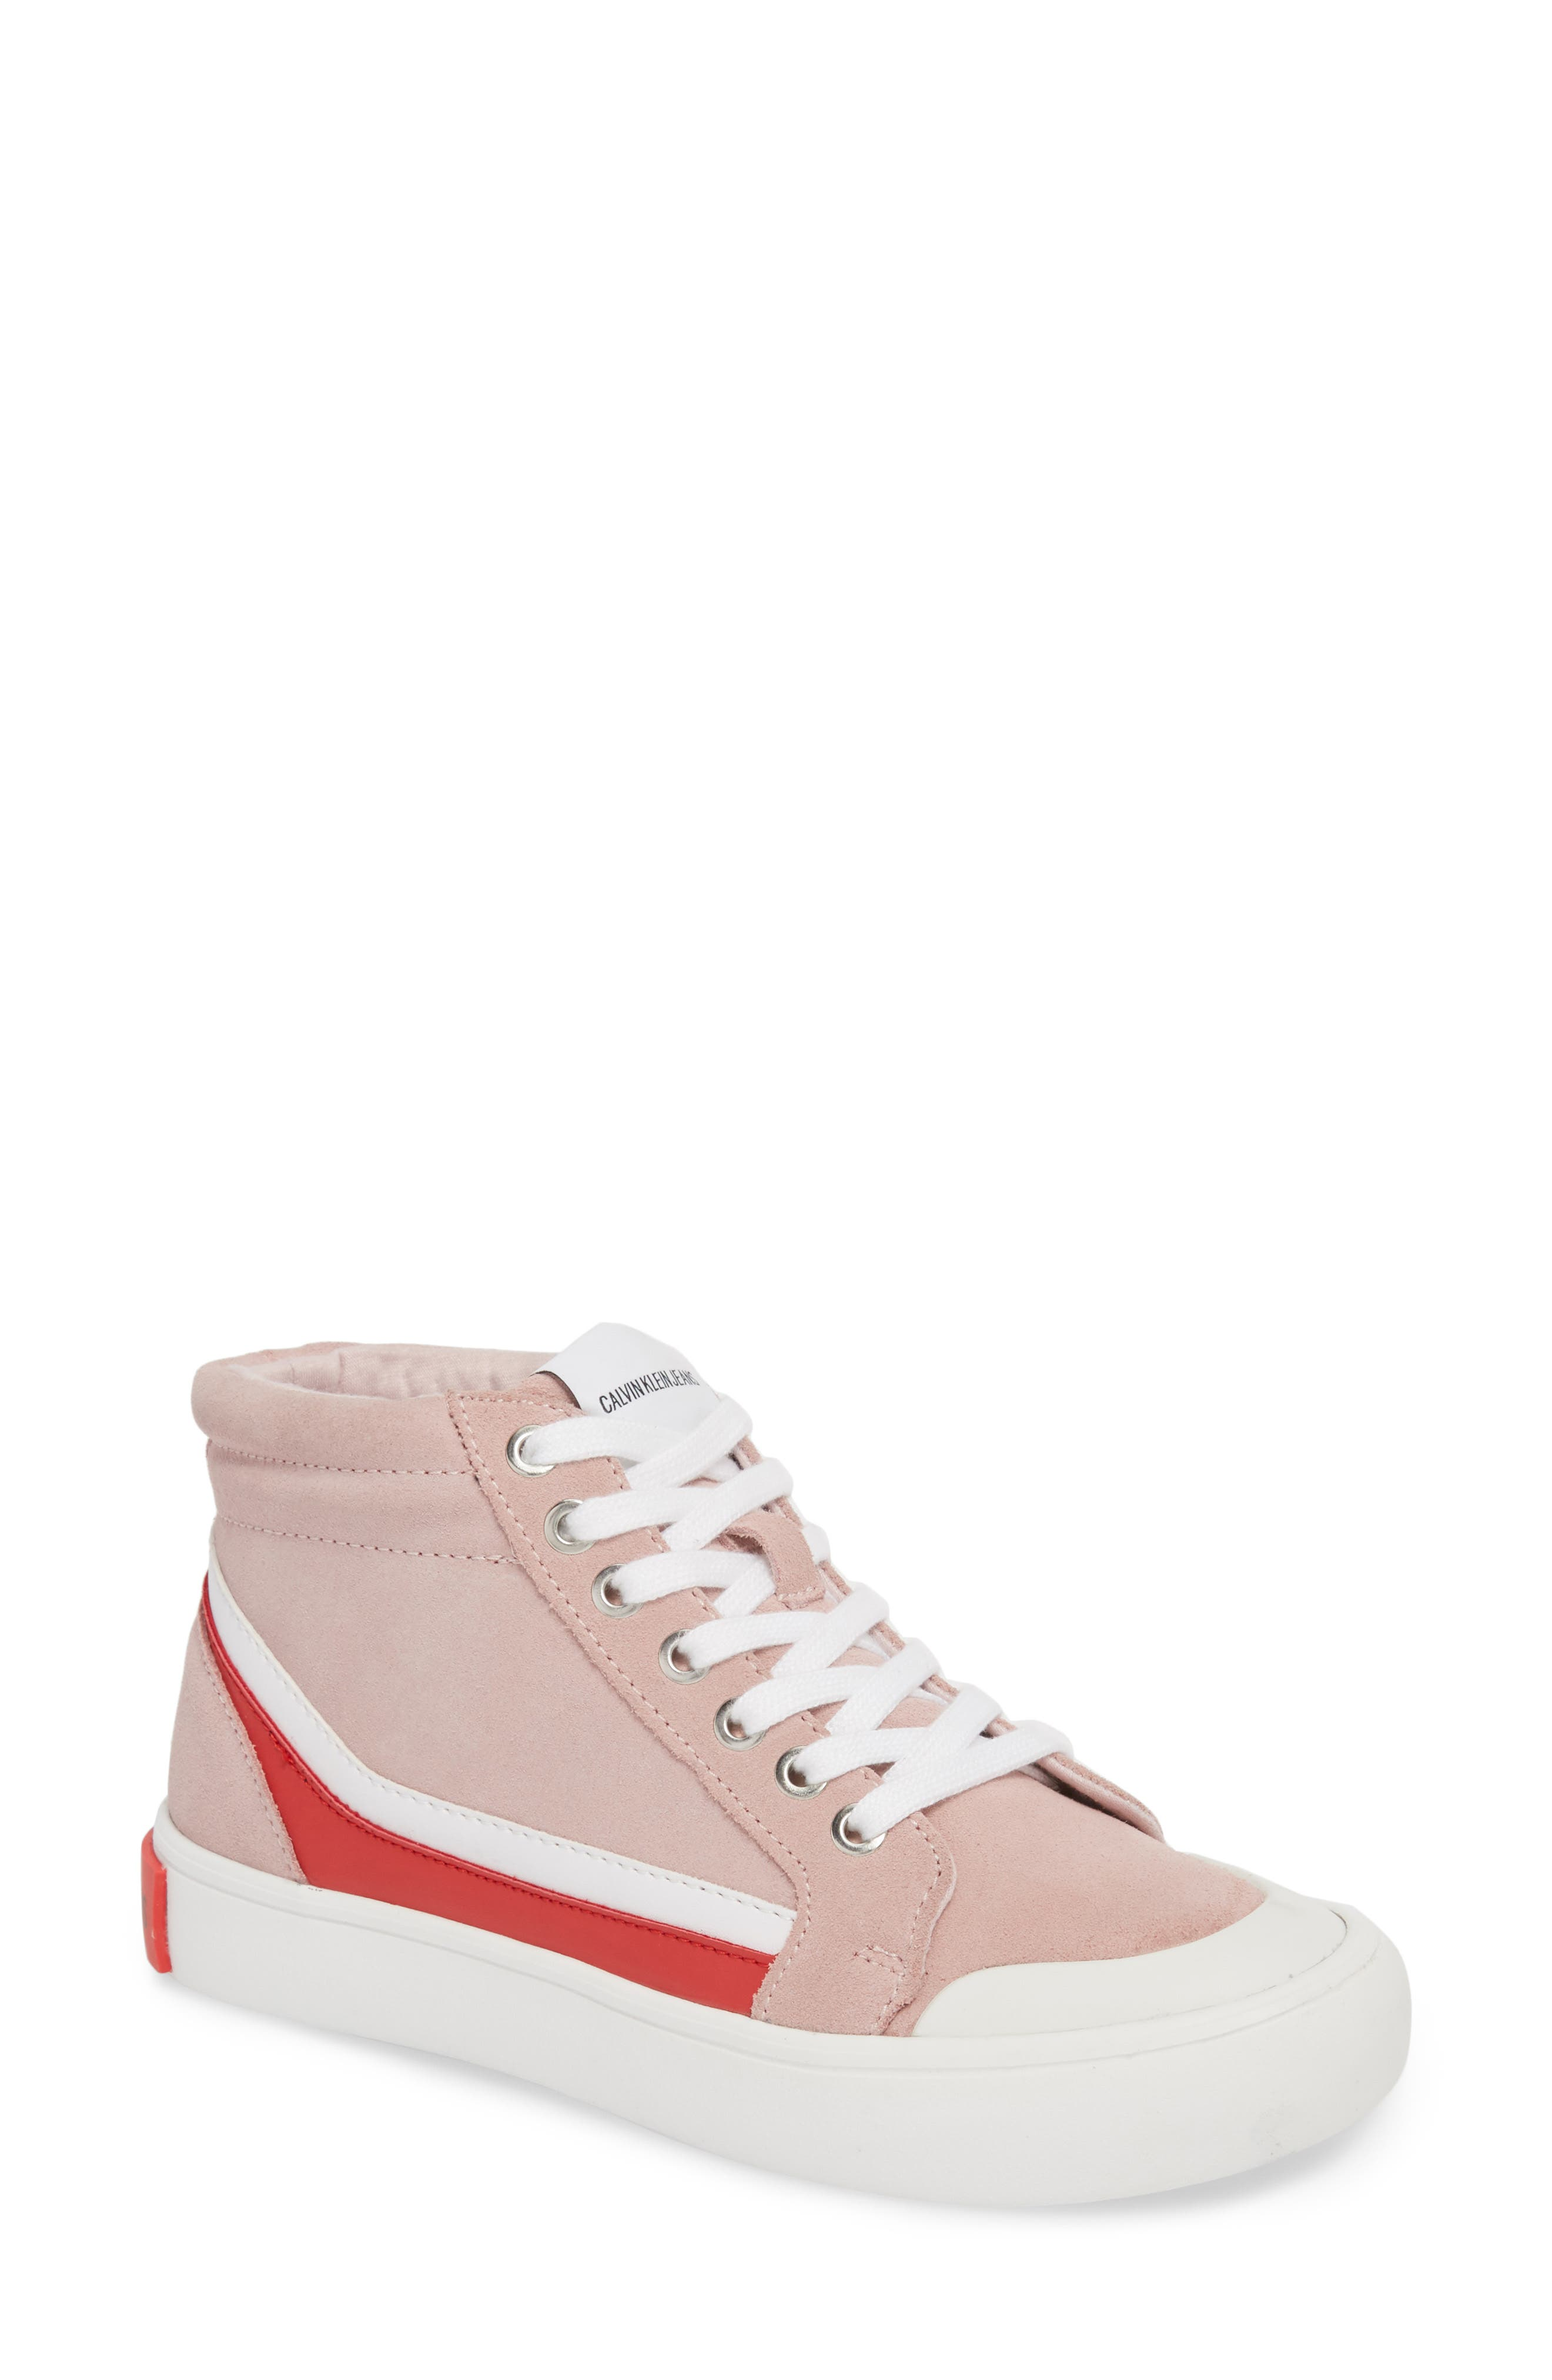 High Top Sneaker,                         Main,                         color, Chintz Rose/ White/ Tomato